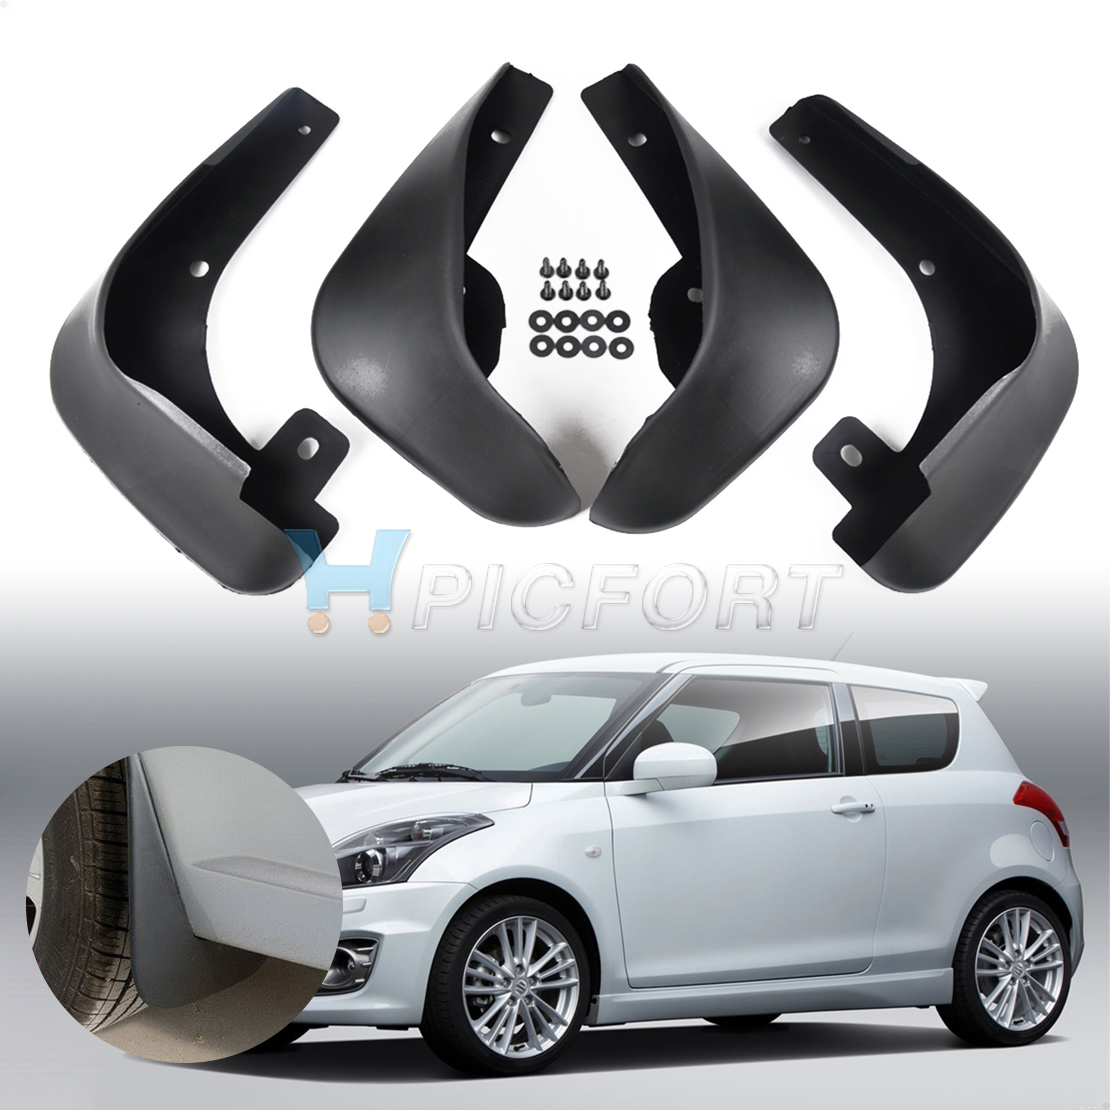 Details about Car Fender Mud Flaps Splash Guards Mudflaps For Suzuki Swift  2011 2012 2013